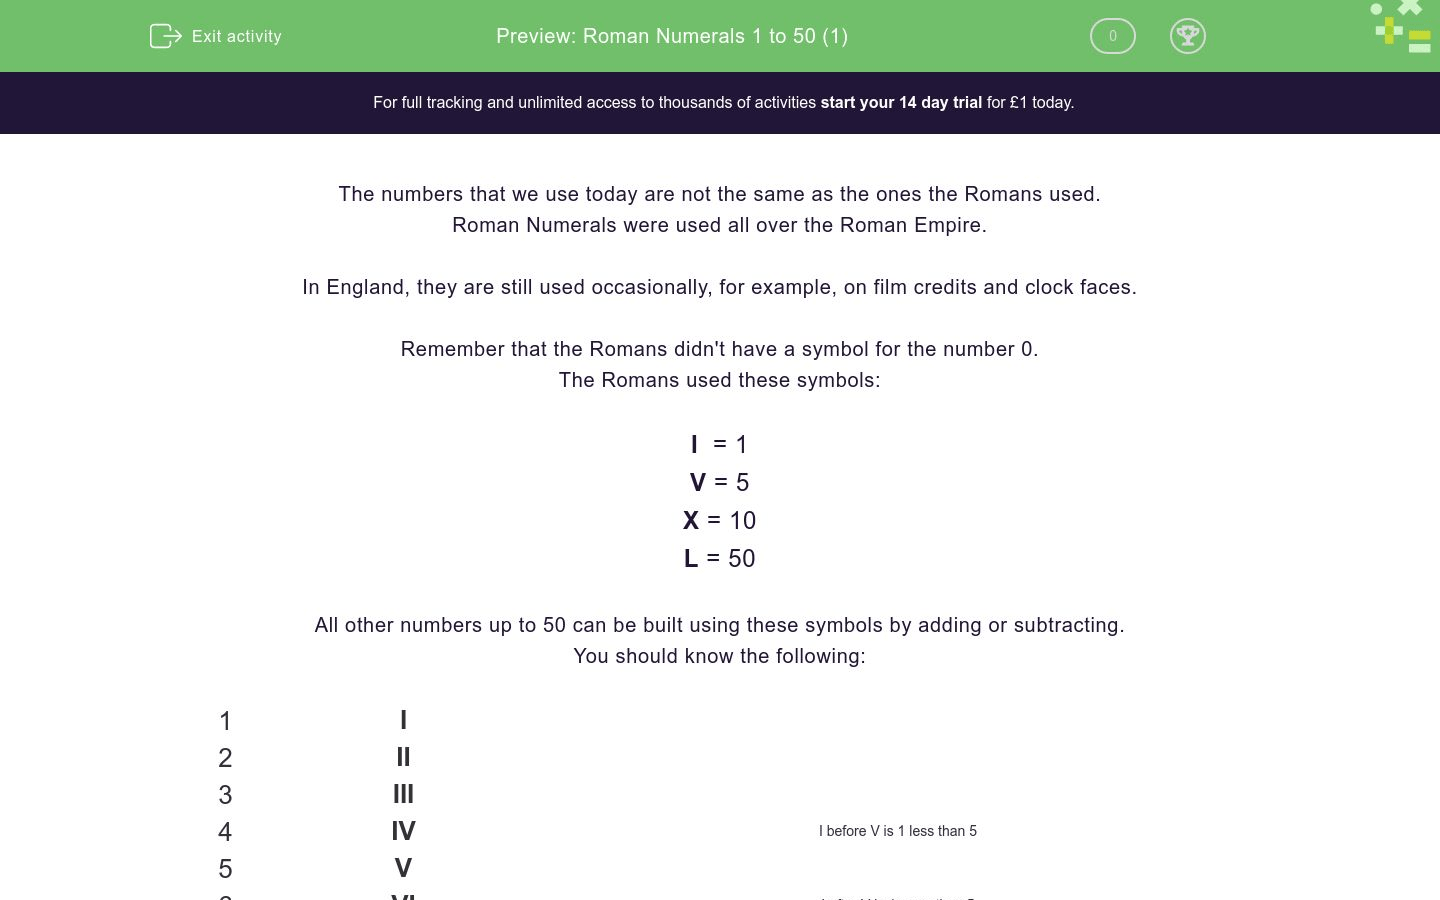 Roman Numerals 1 To 50 1 Worksheet